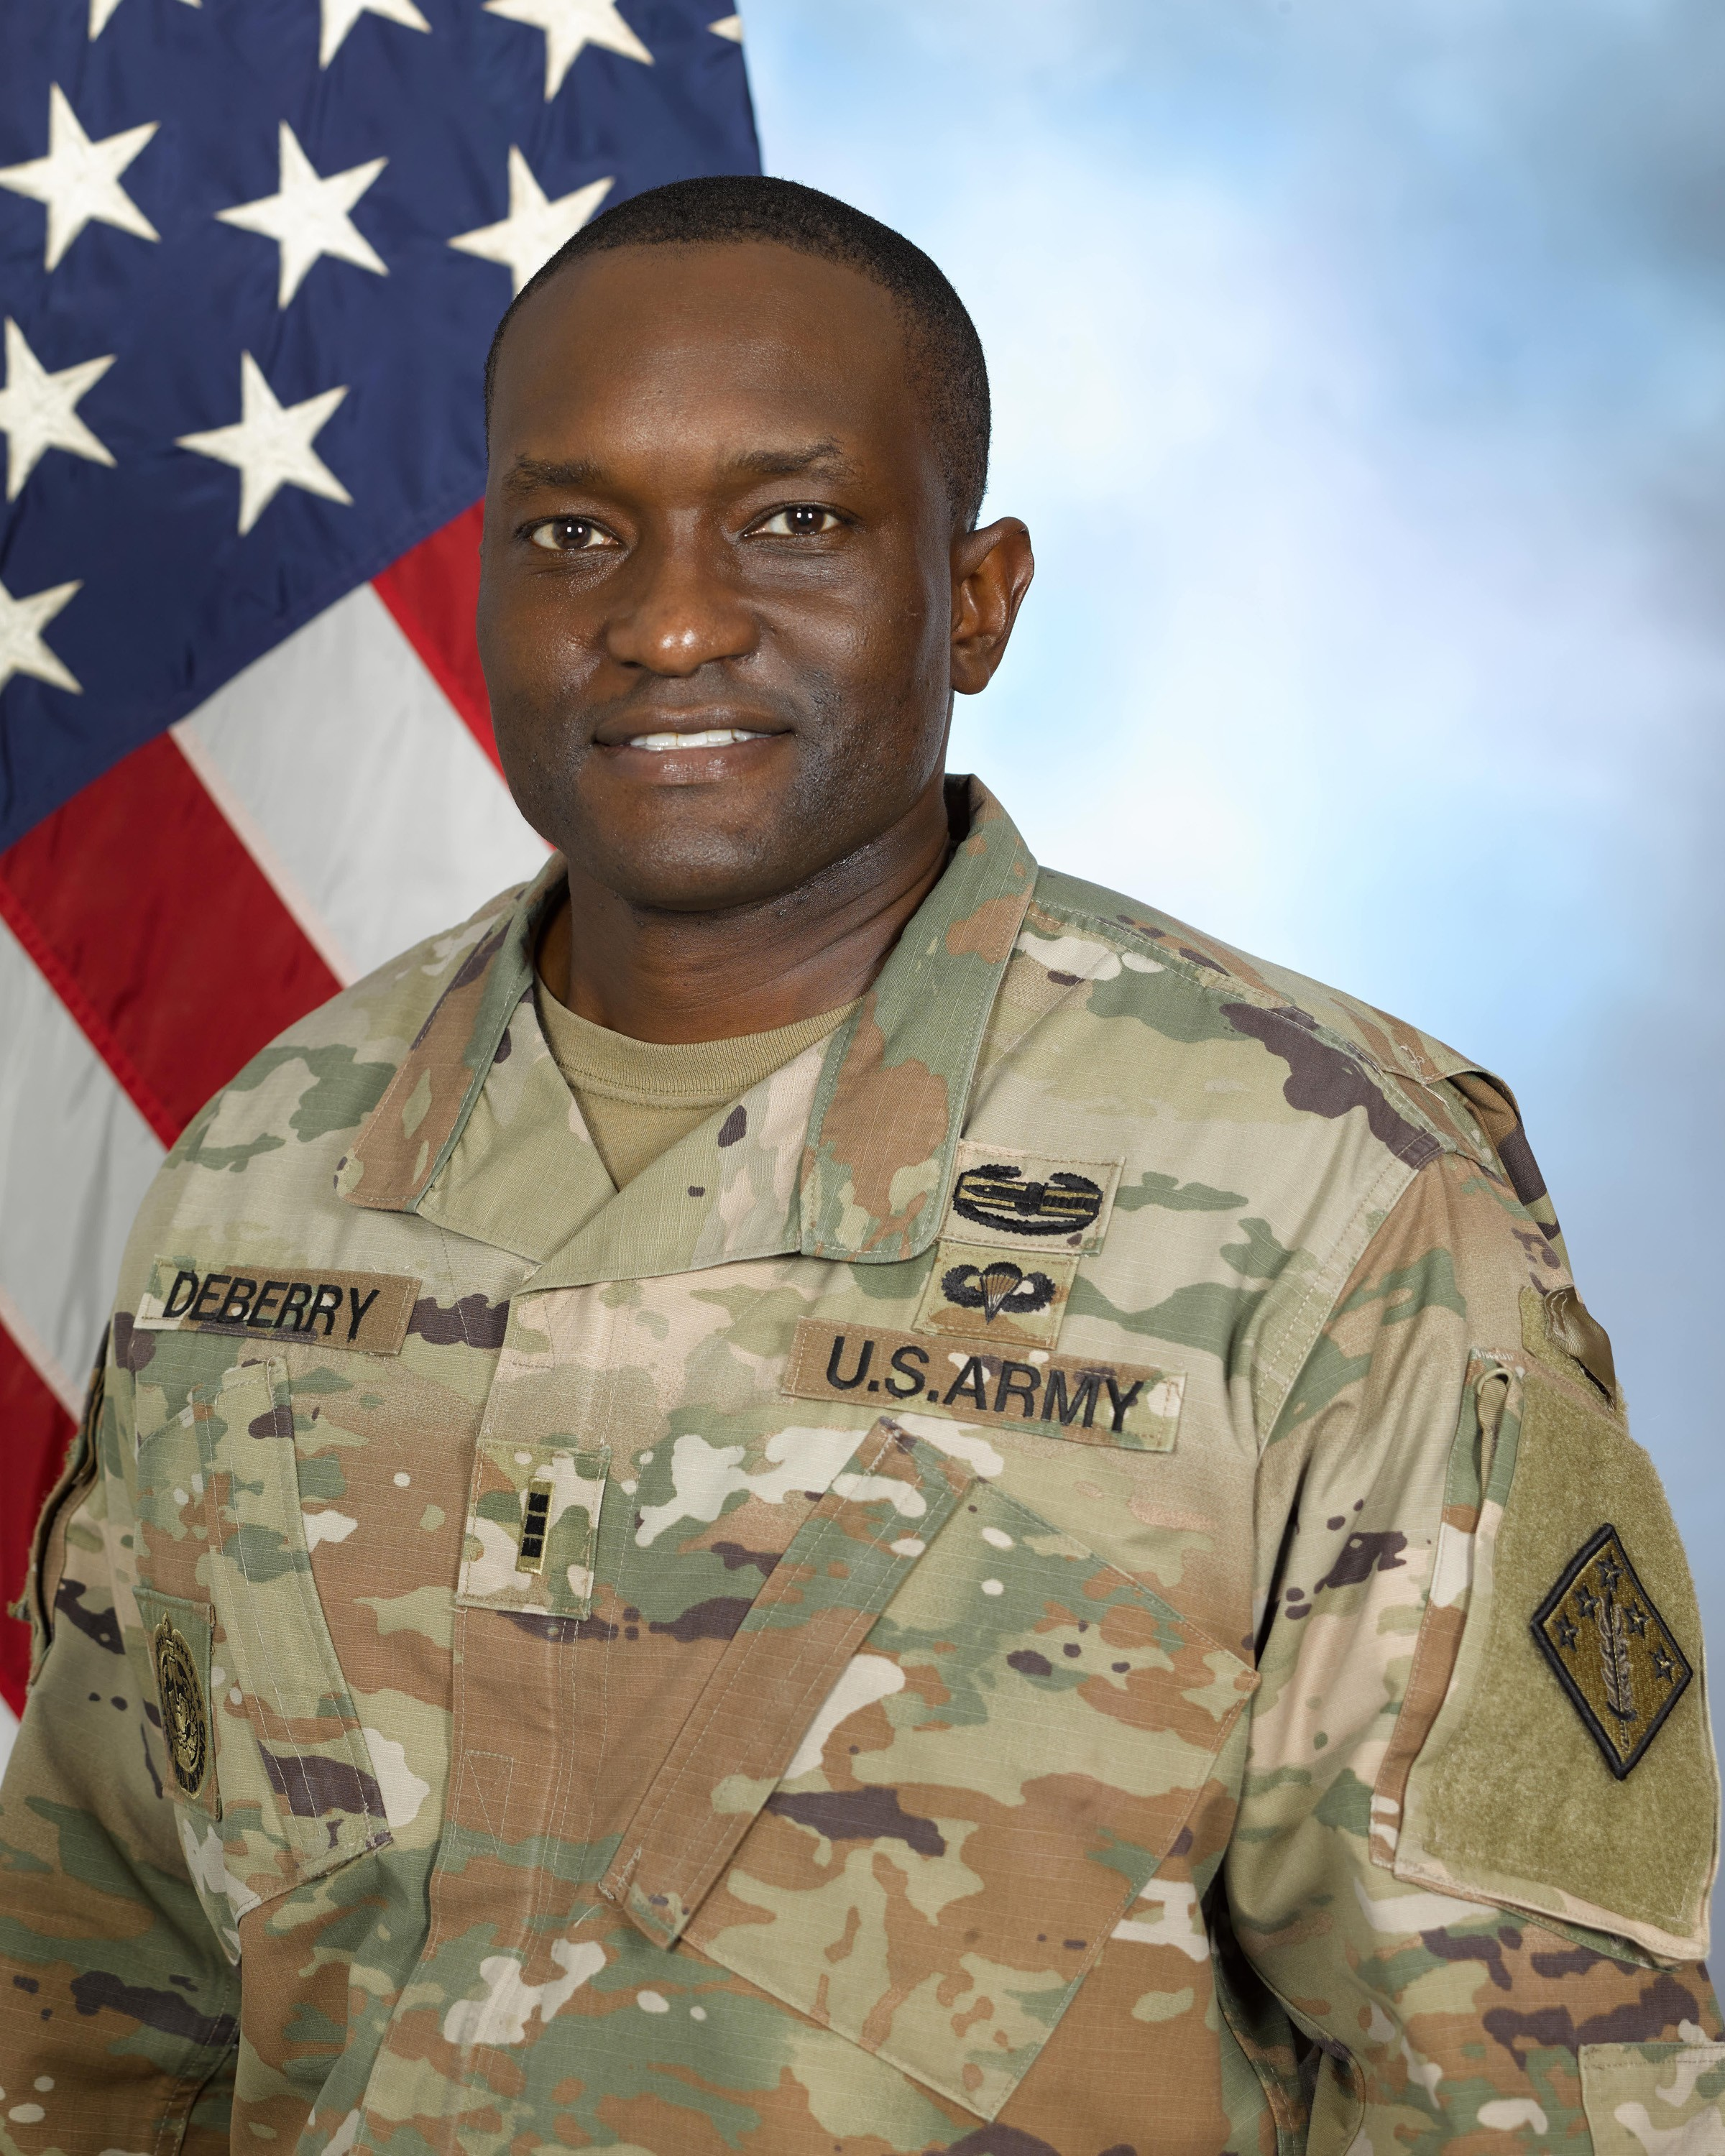 Chief Warrant Officer 3 Jesse Deberry